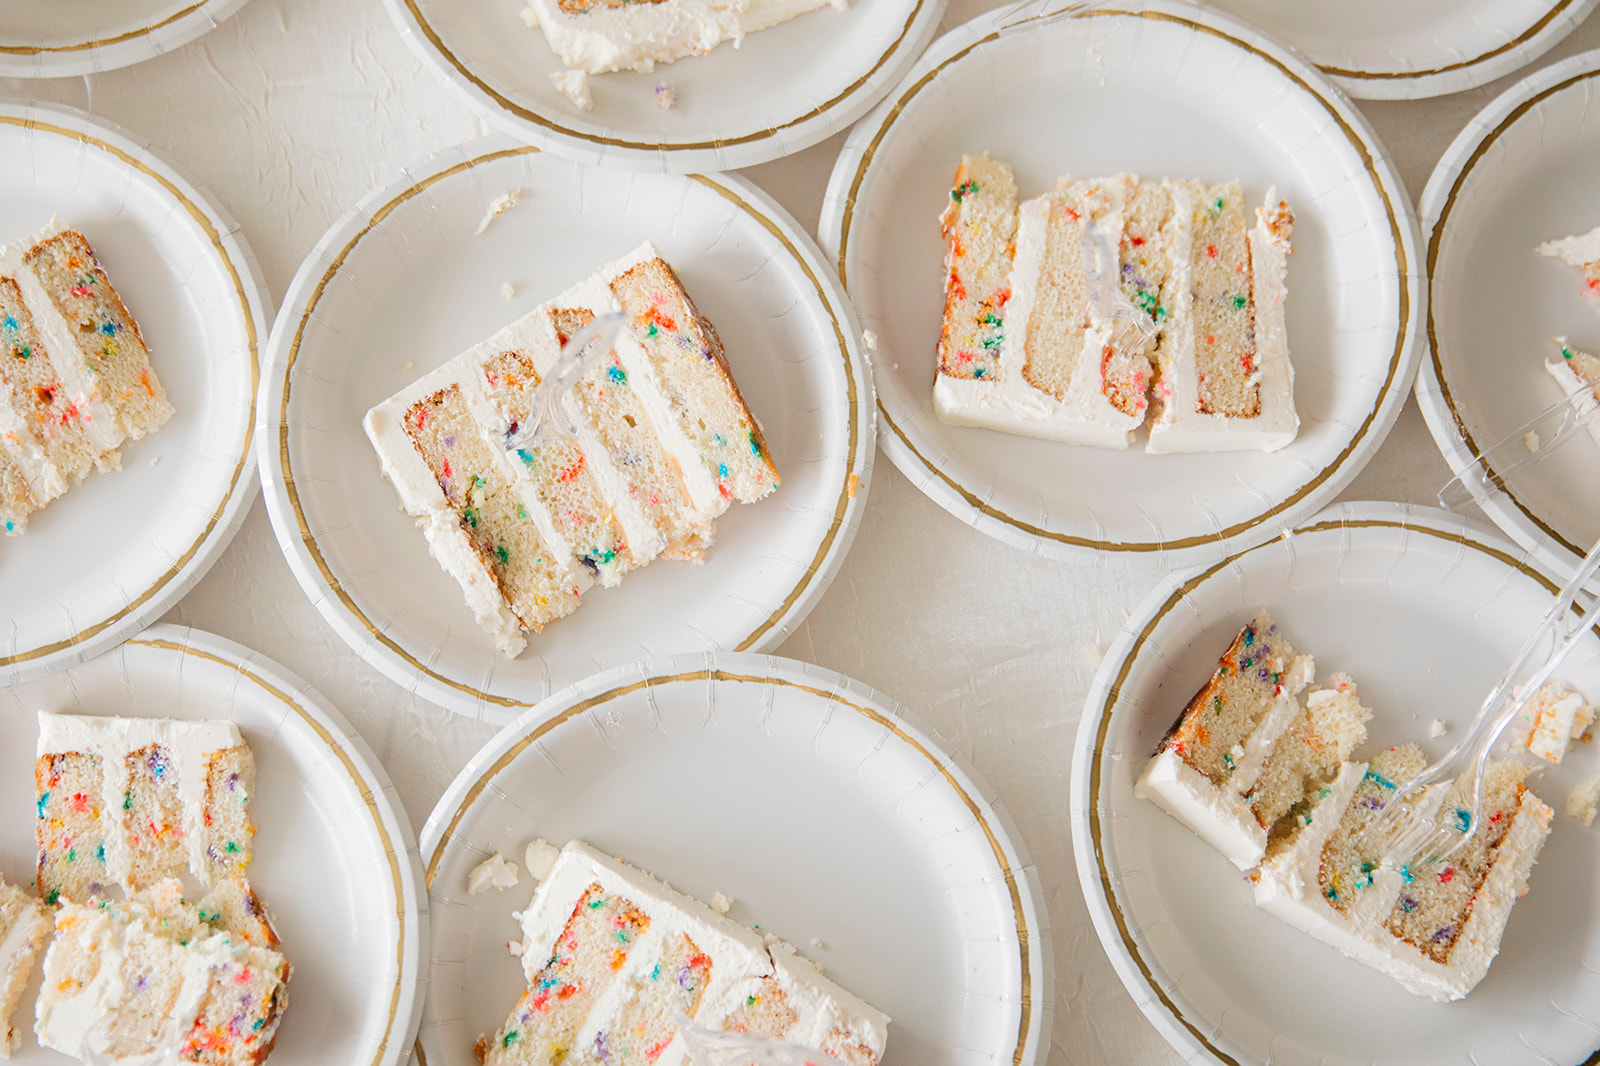 Flavors - All cakes, buttercream, and fillings are made completely from scratch with fresh, all natural ingredients. I use Swiss meringue buttercream on my cakes which is light, satiny-smooth, and not too sweet.